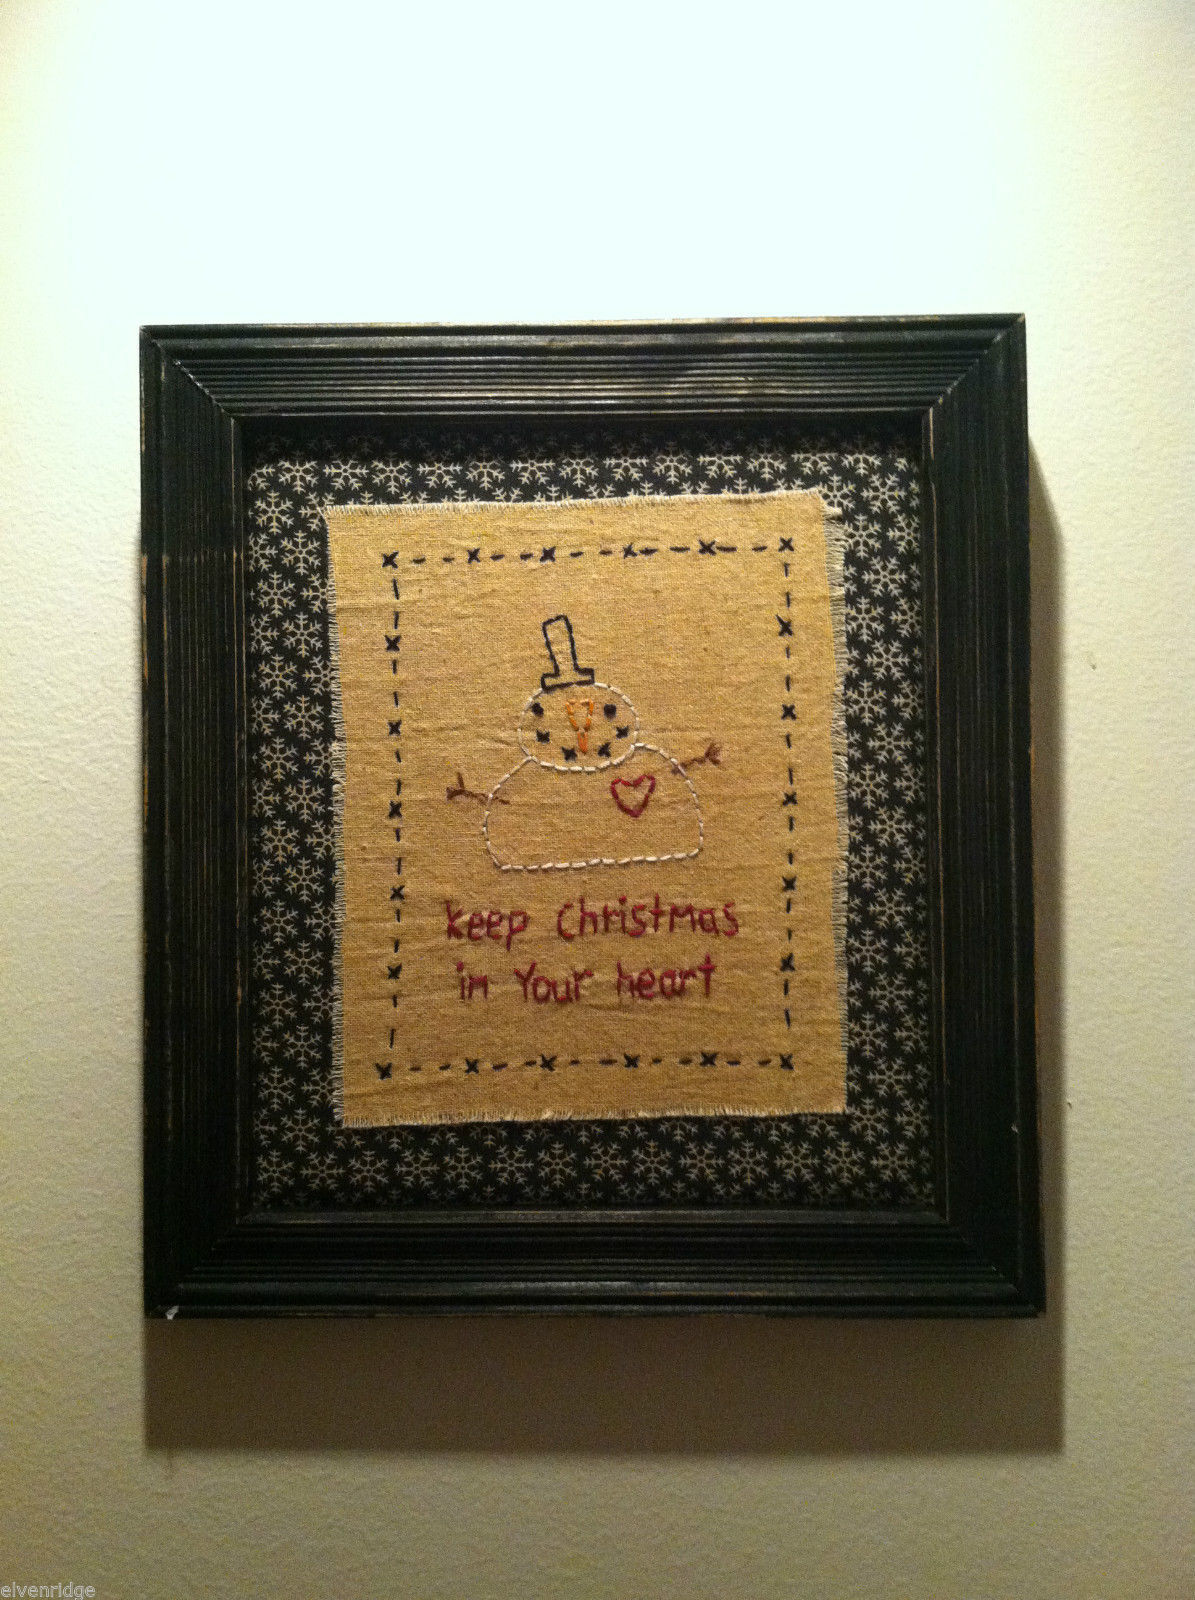 Hand Stitched Keep Christmas in Your Heart Snowman Framed Picture